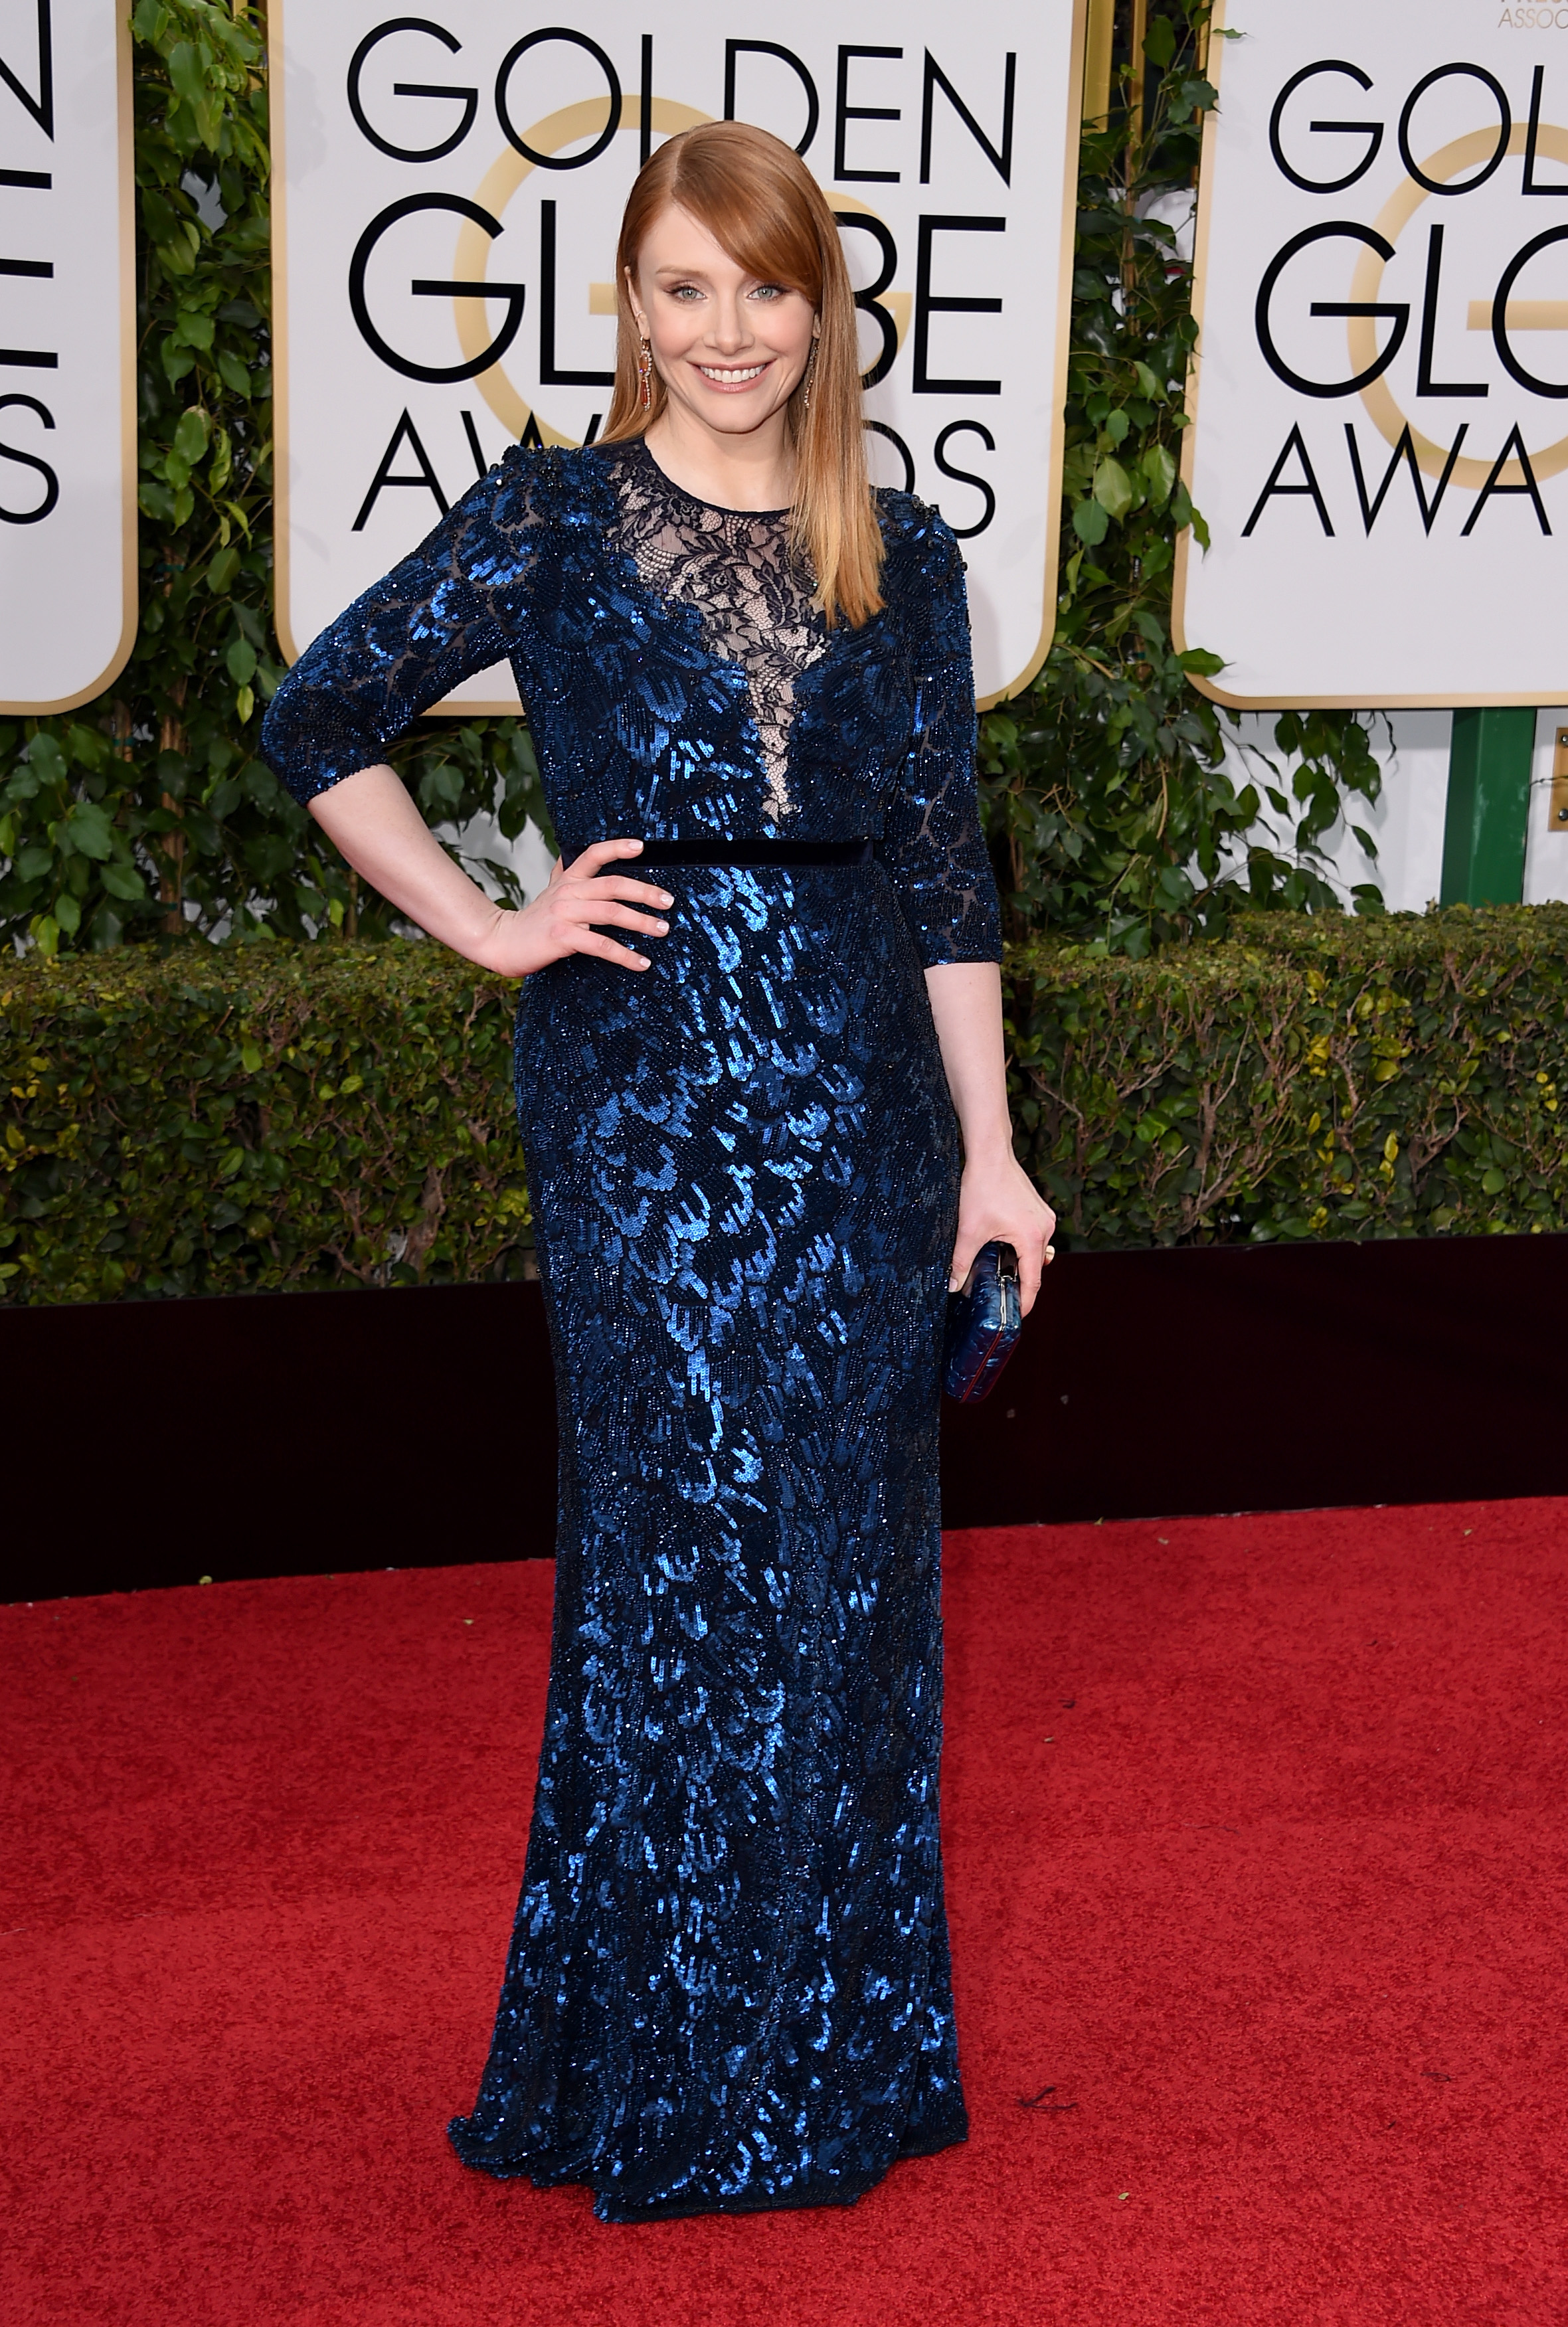 Bryce Dallas Howard arrives to the 73rd Annual Golden Globe Awards on Jan. 10, 2016 in Beverly Hills.